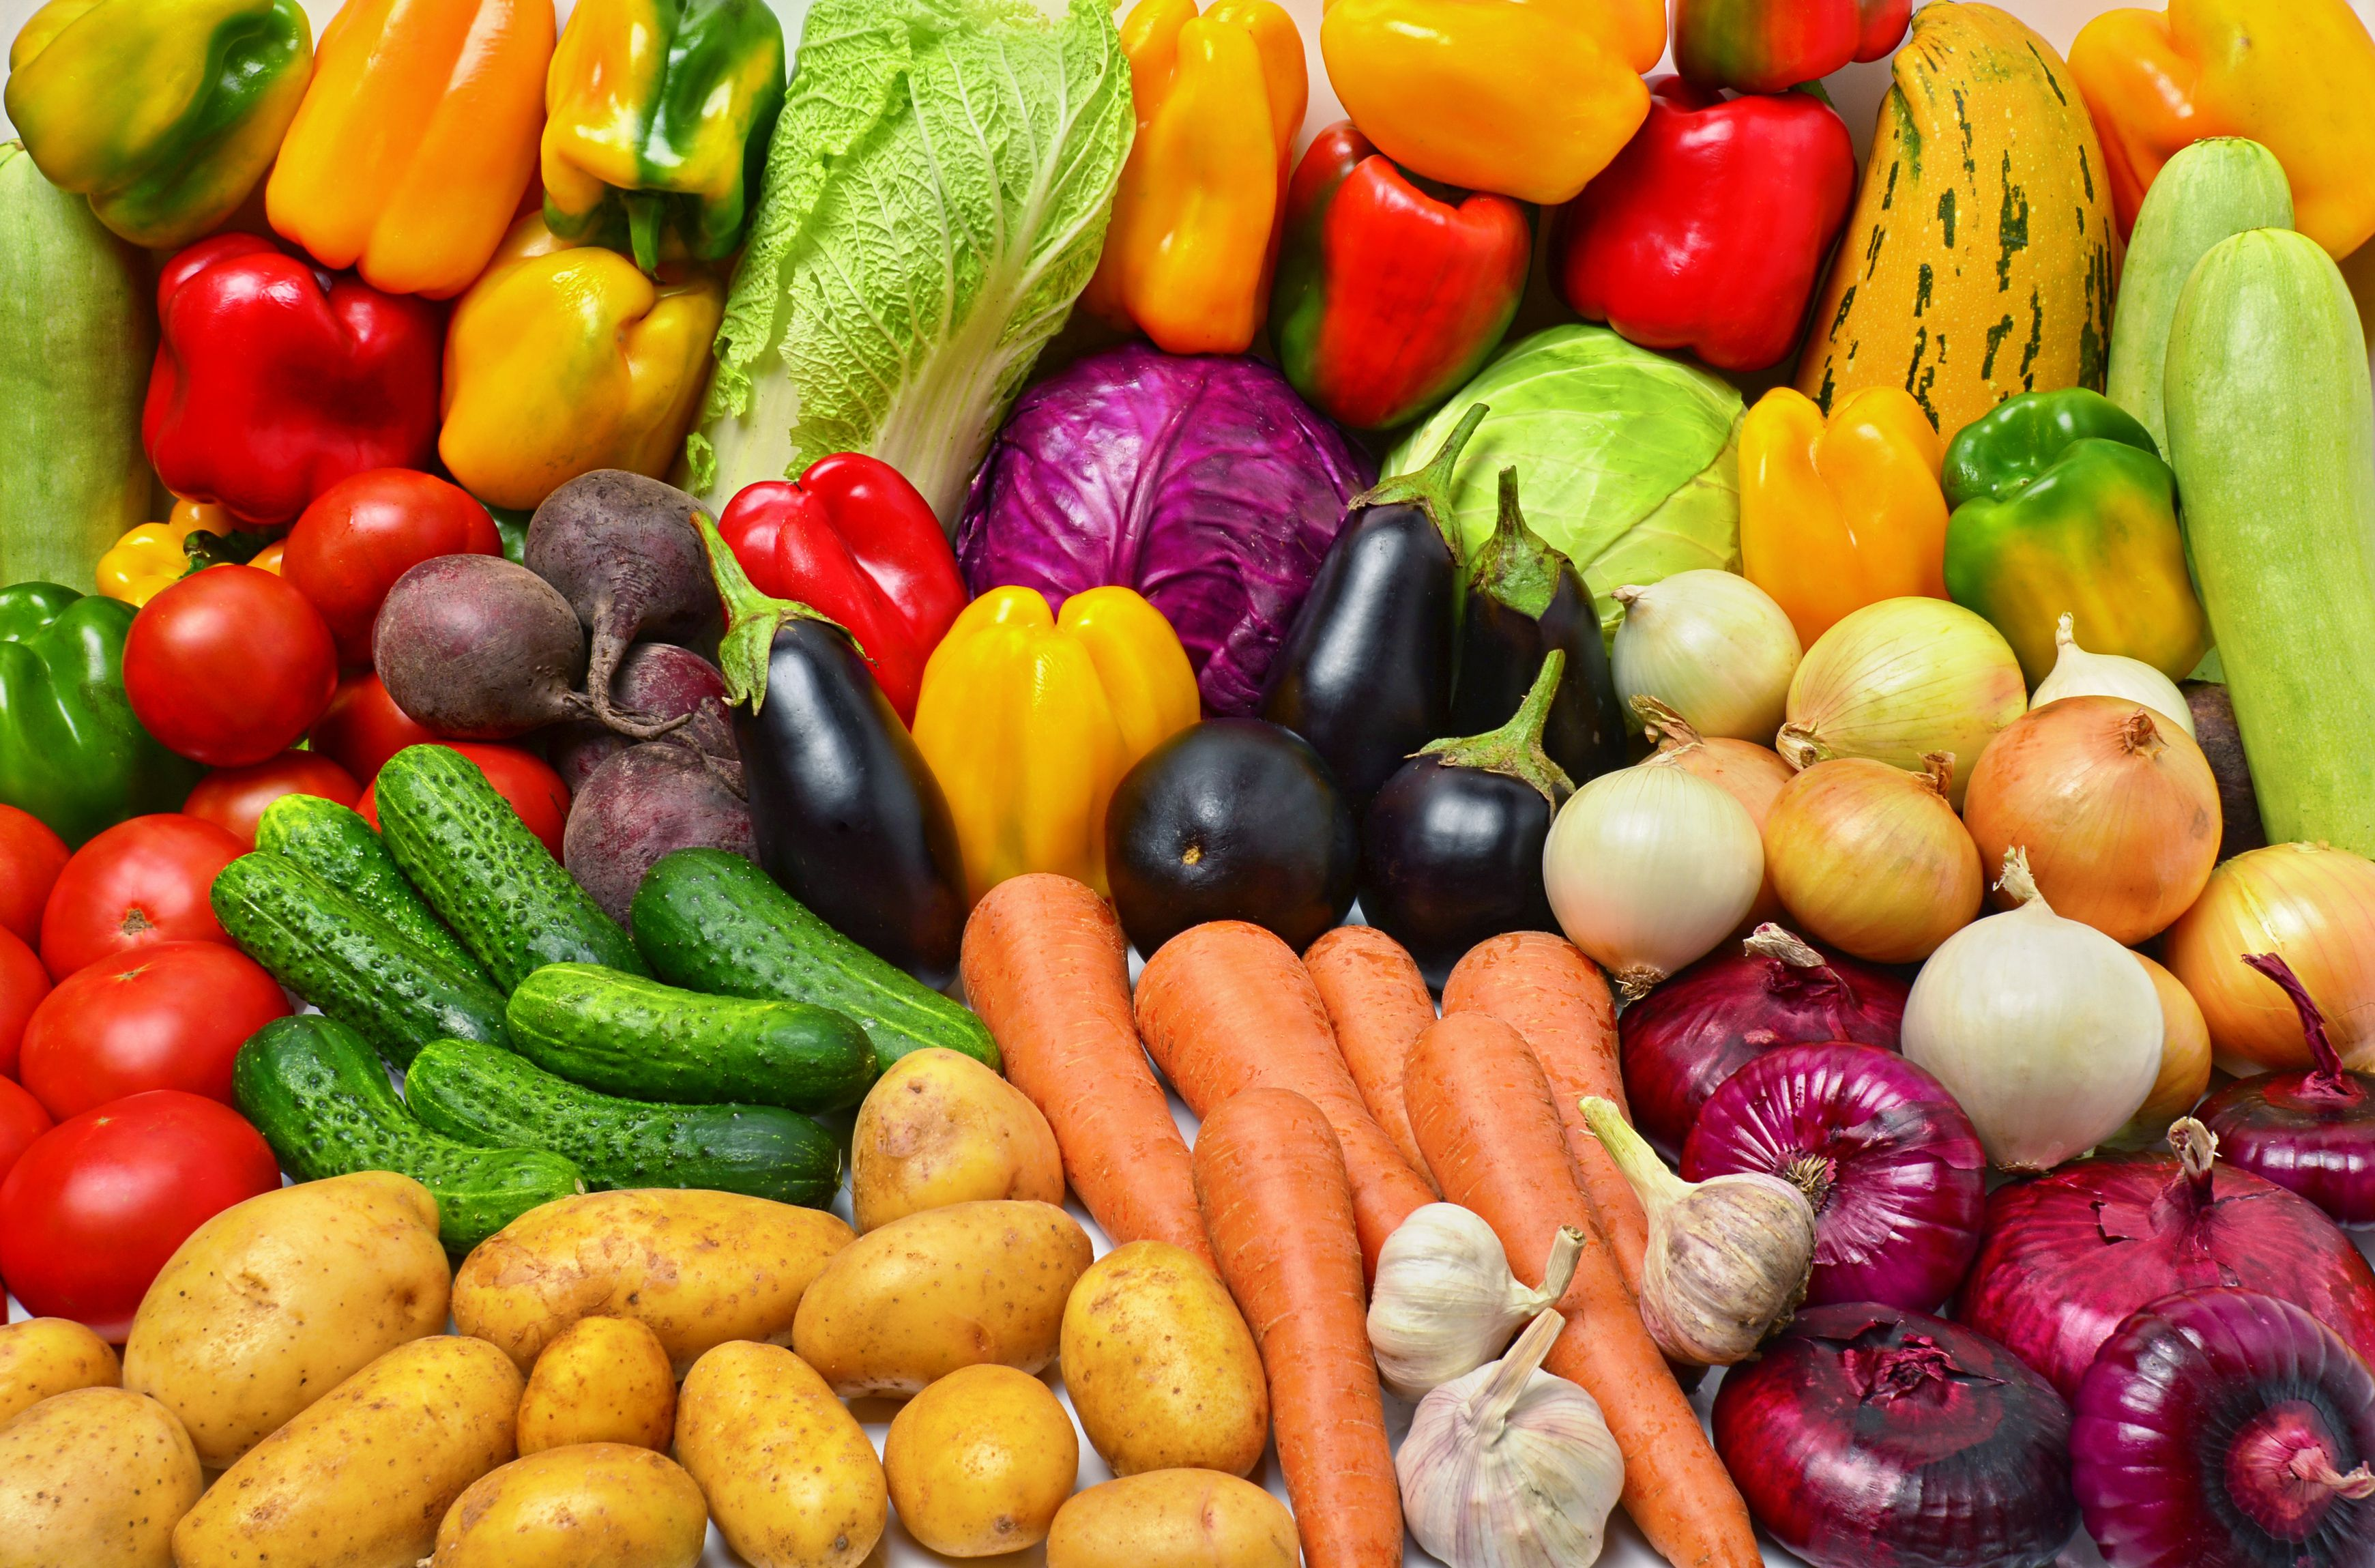 Secondary Edible Parts Of Vegetables Did You Know You